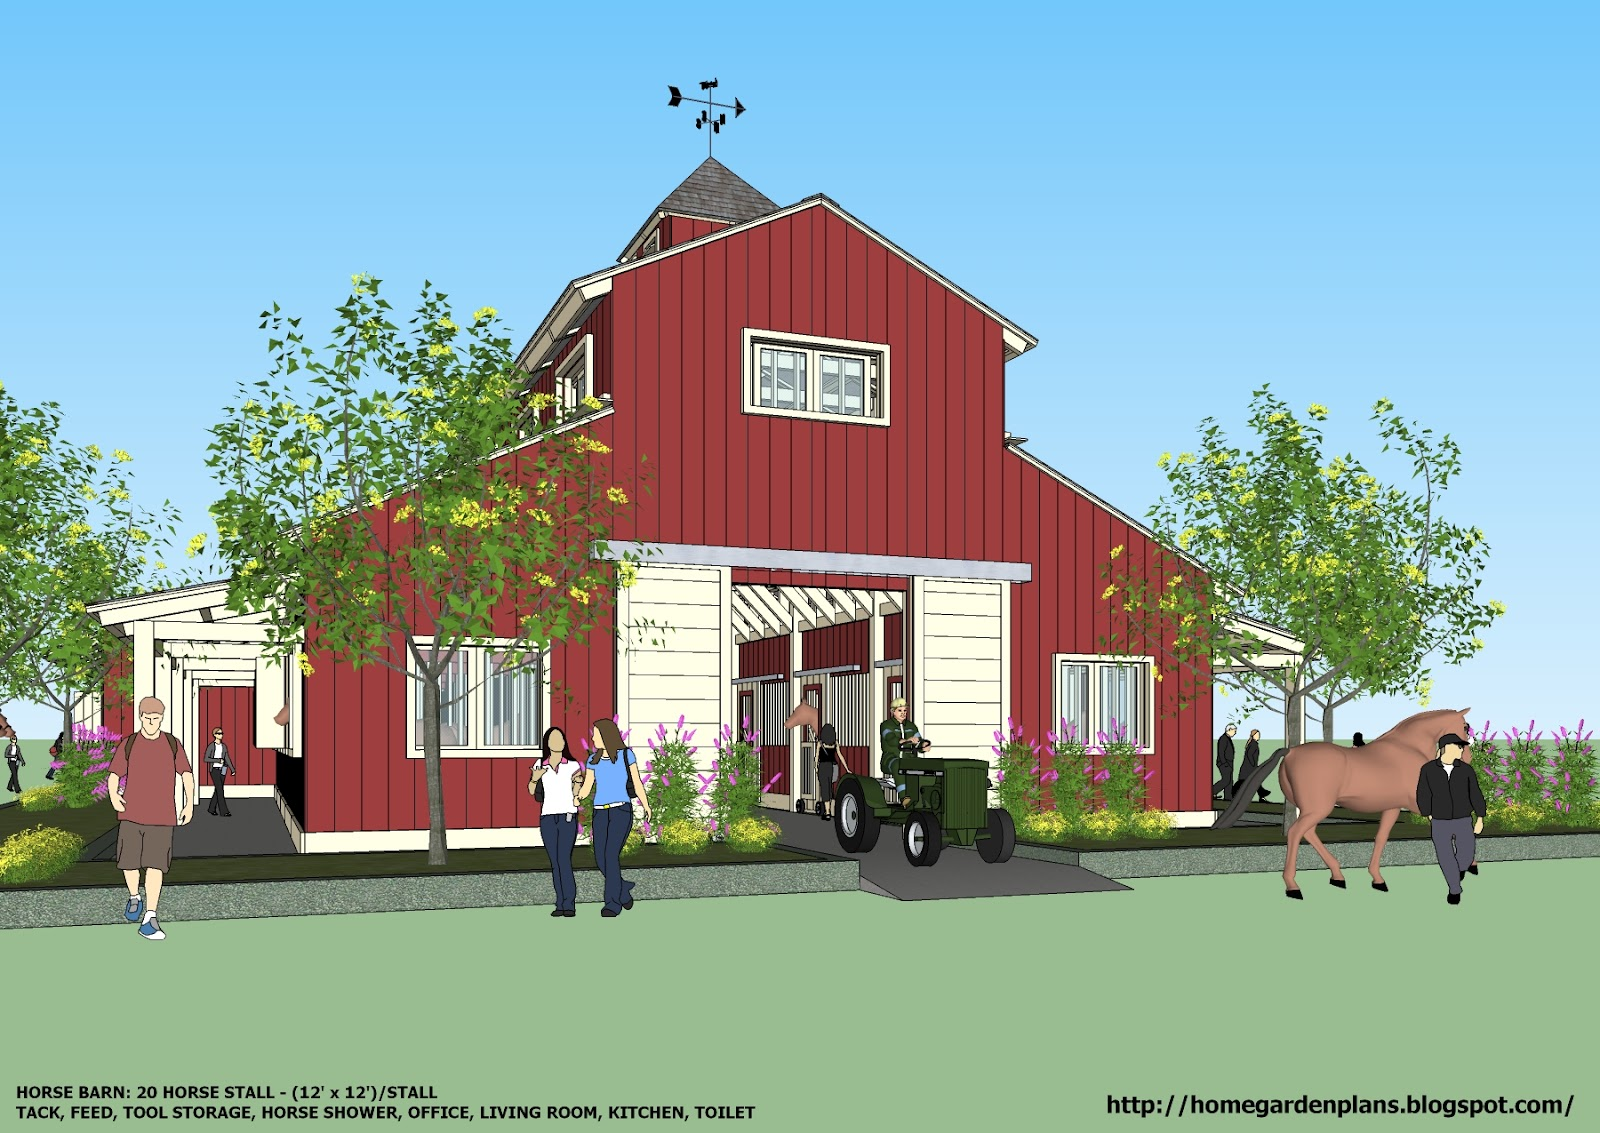 Home garden plans b20h large horse barn for 20 horse for Barn designs